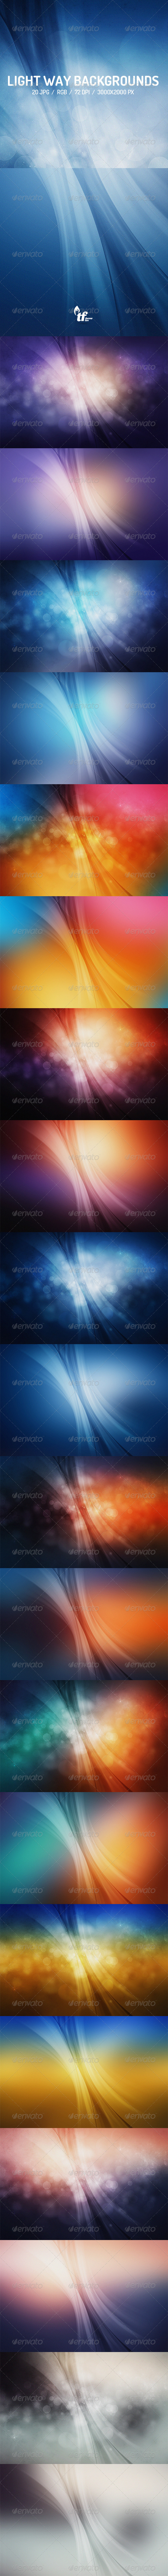 GraphicRiver Light Way Backgrounds 8437039